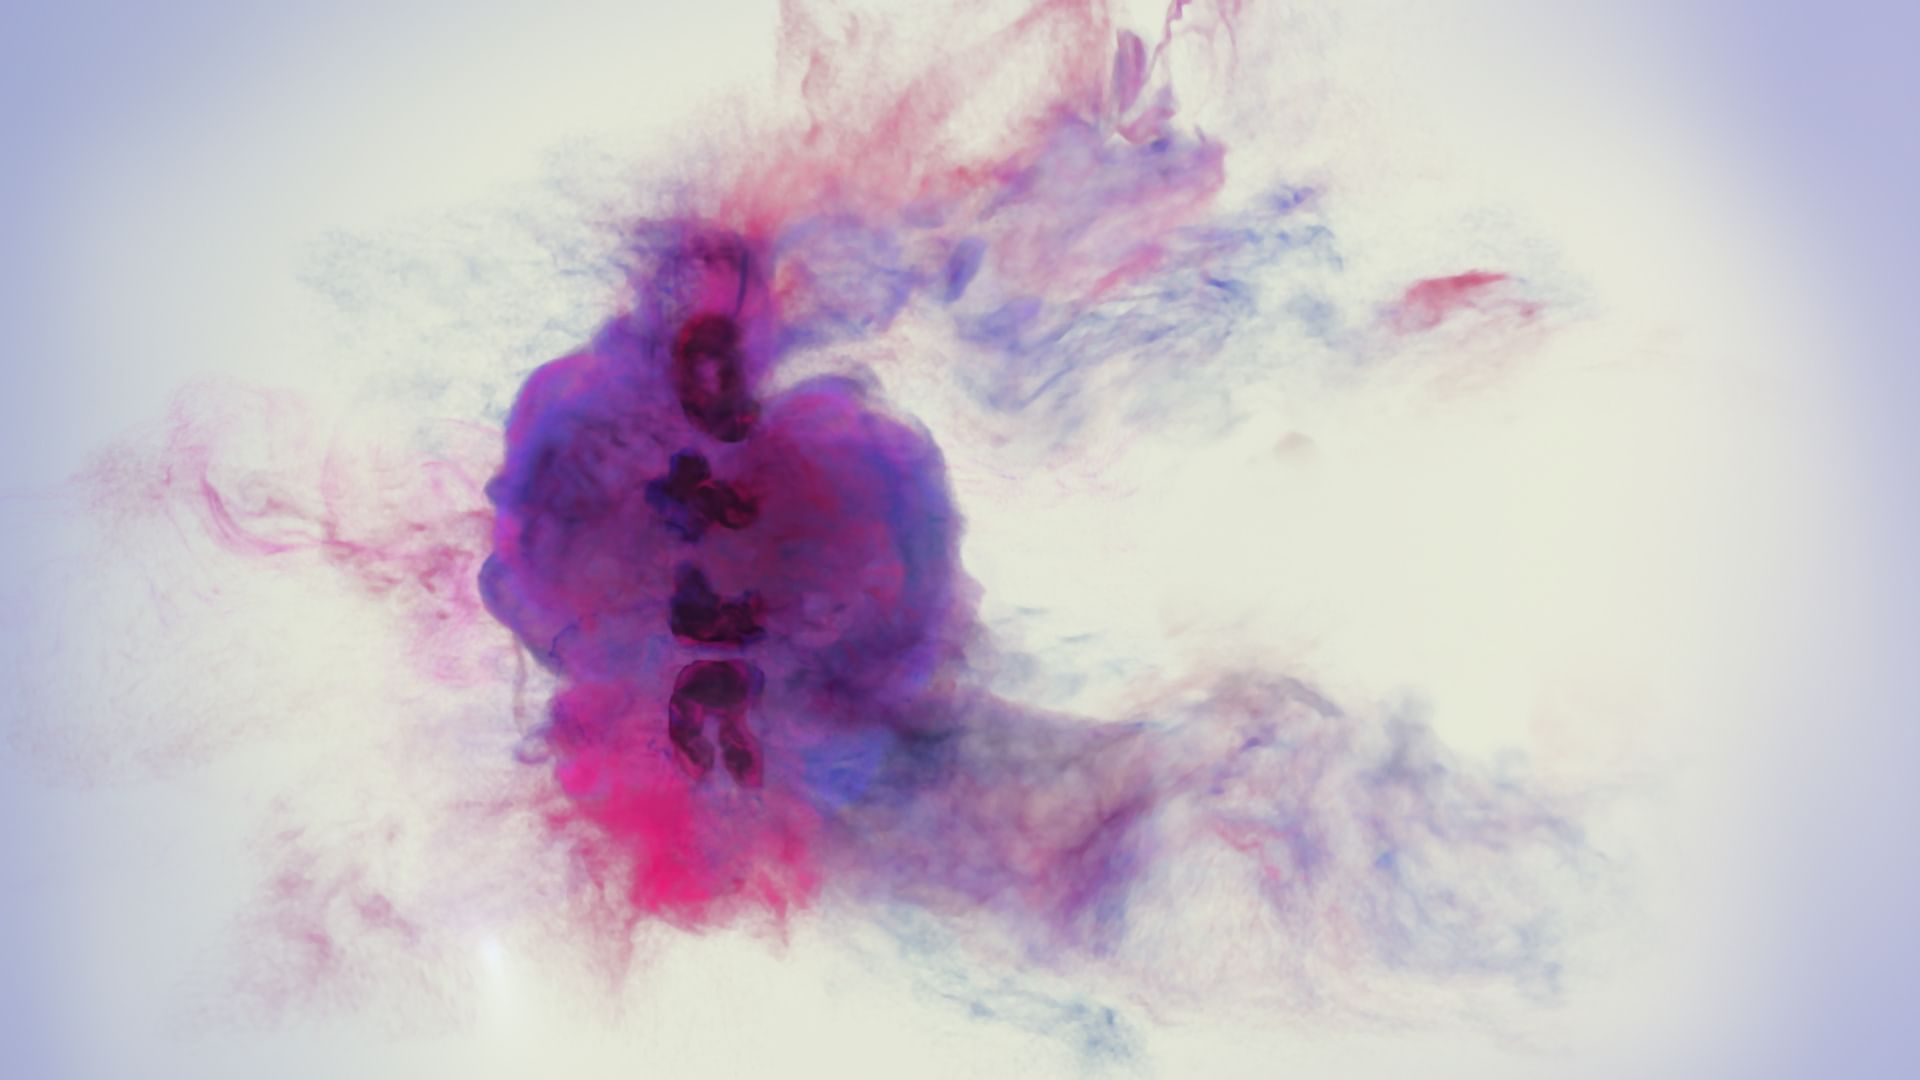 """Rote Laterne"" von Zhang Yimou"